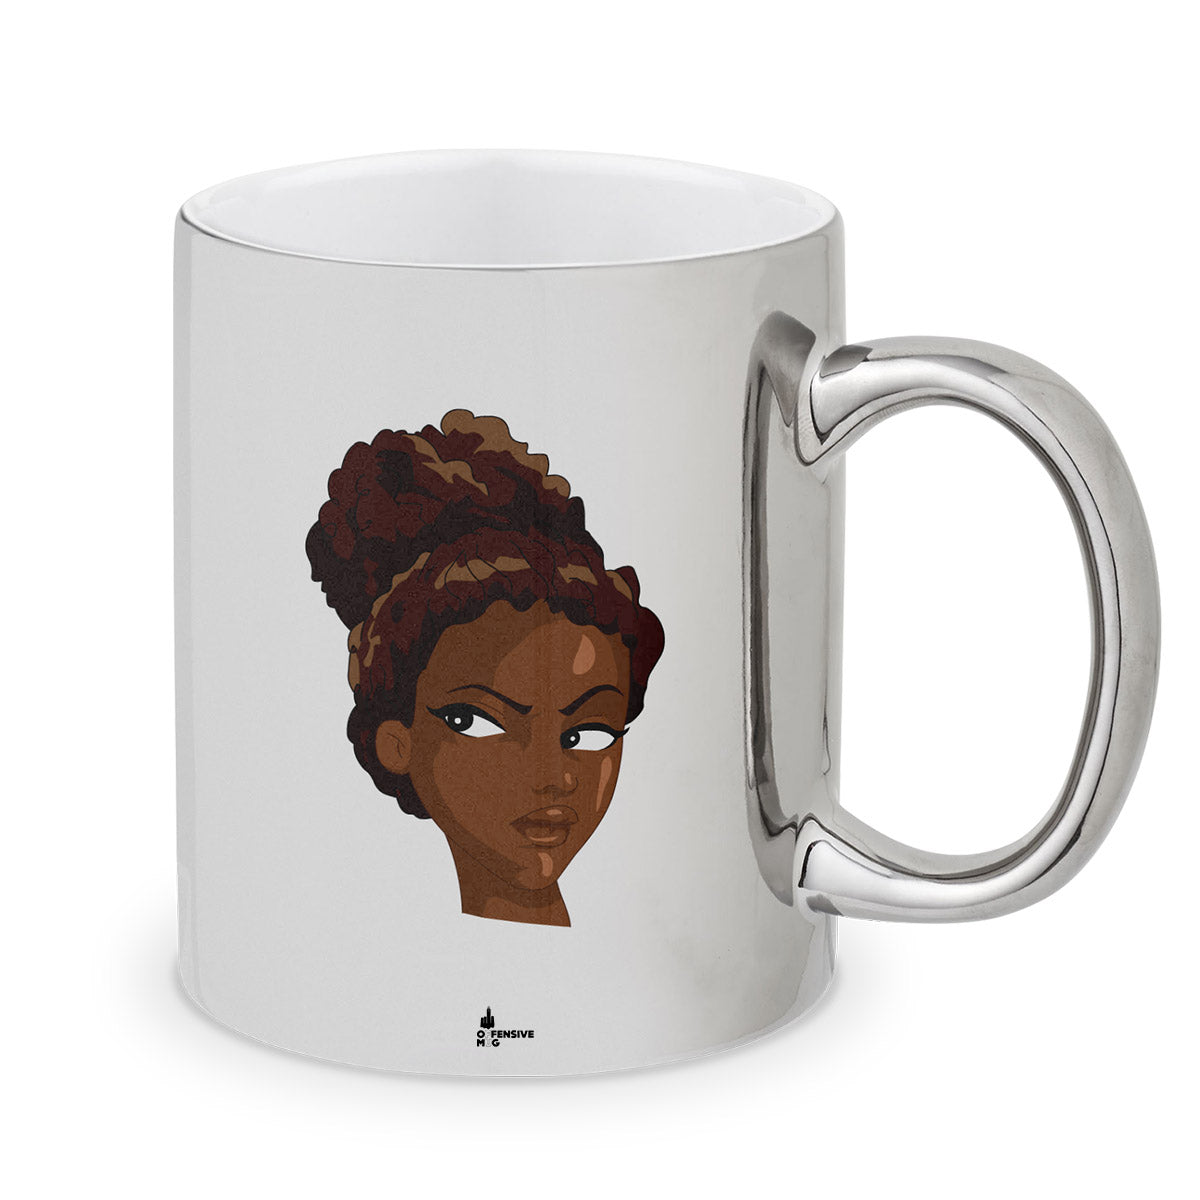 Yvette Metal Plated Mug - Offensive Mug